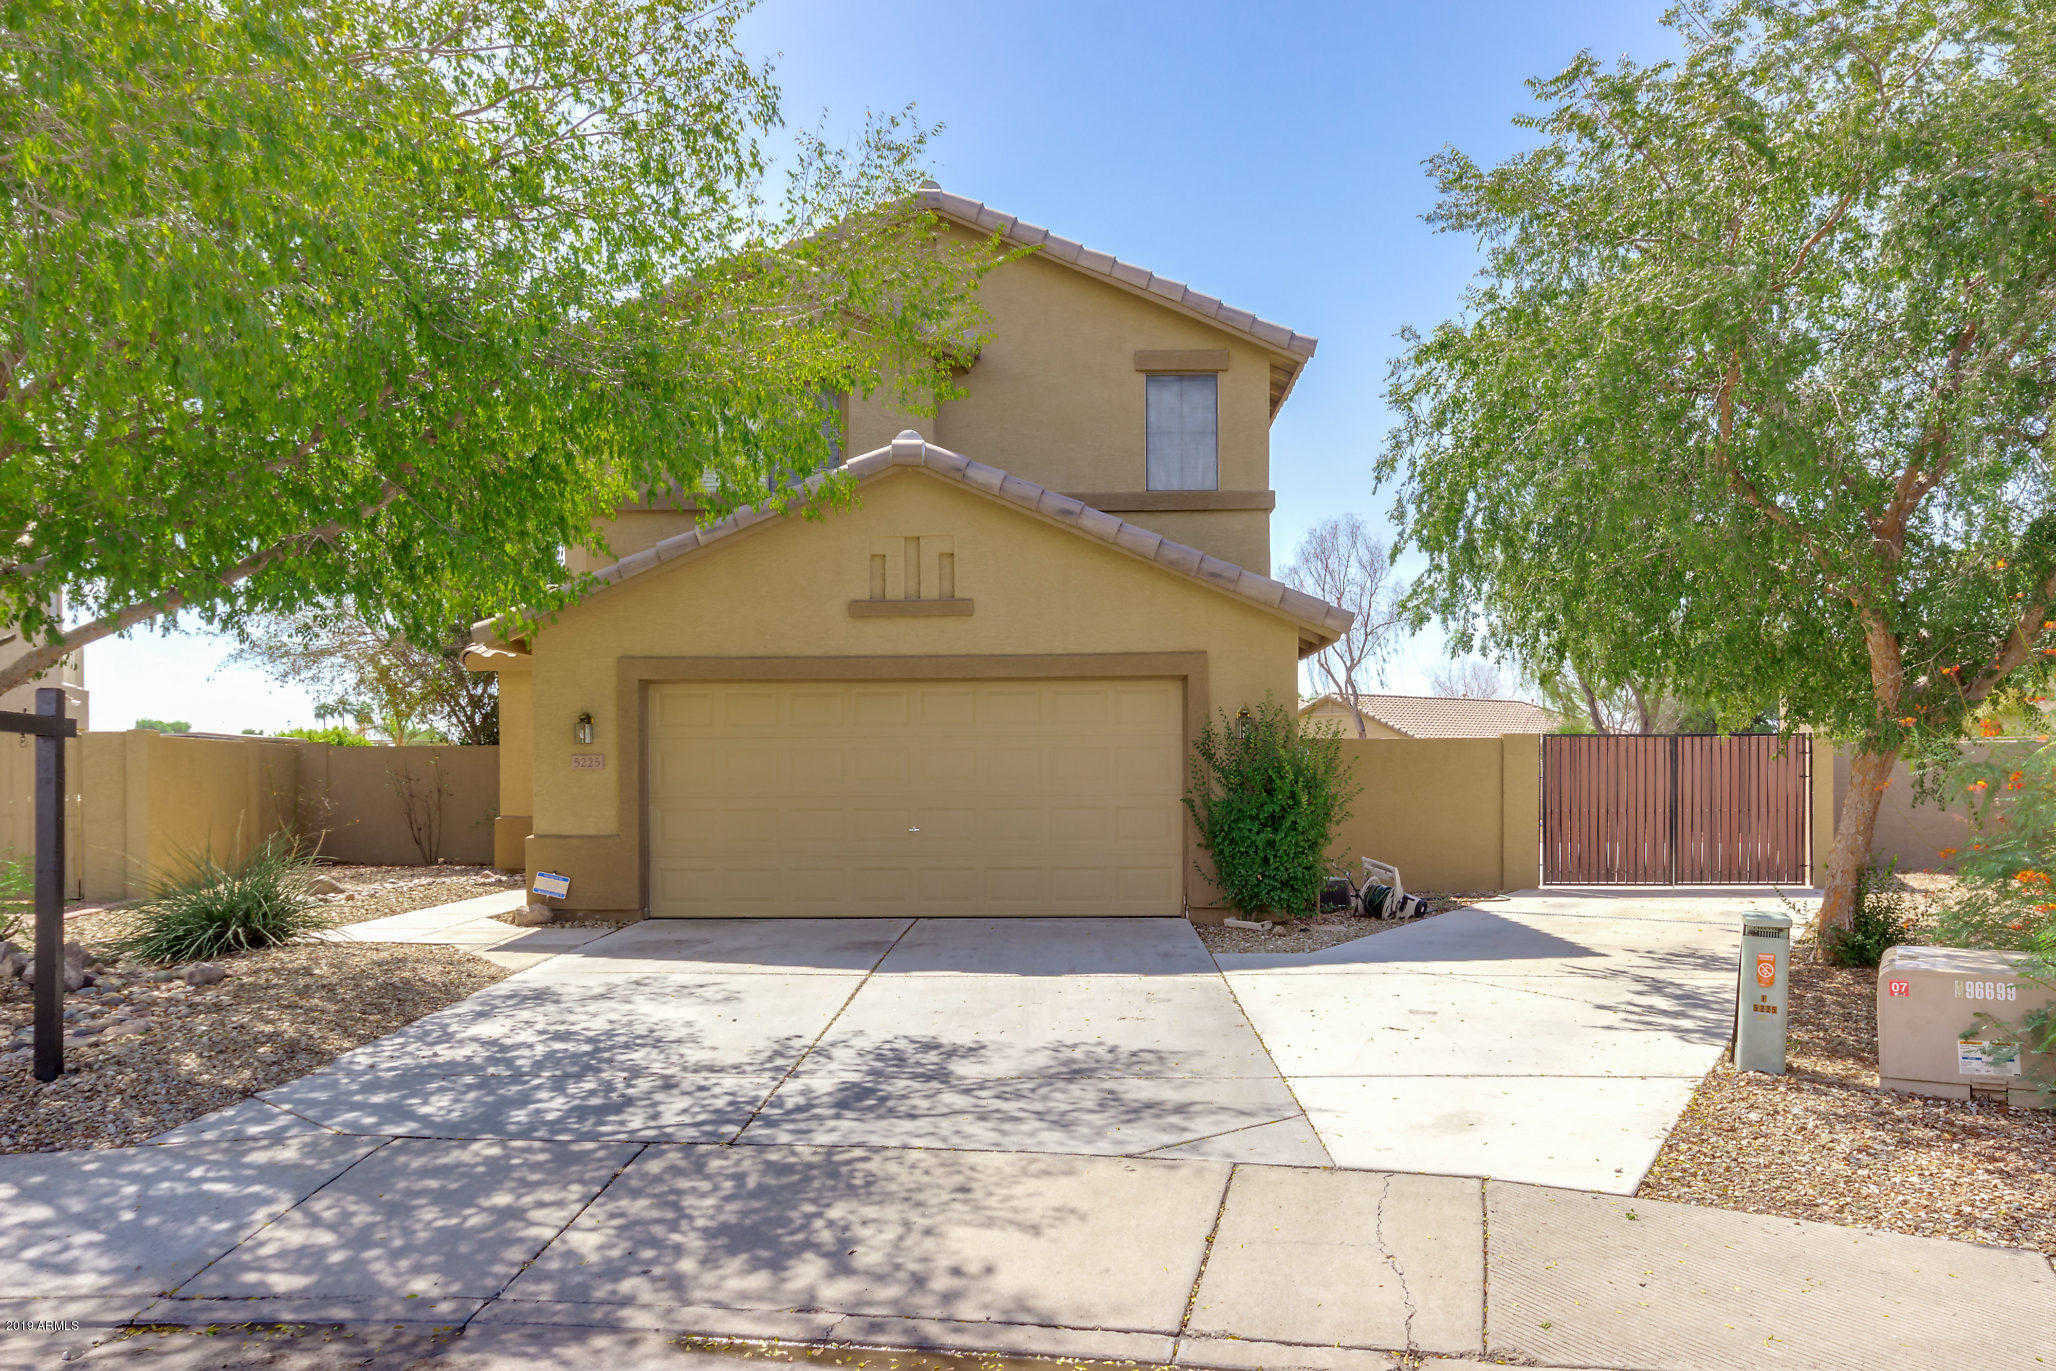 $349,900 - 5Br/3Ba - Home for Sale in Touchstone /west Glen, Glendale